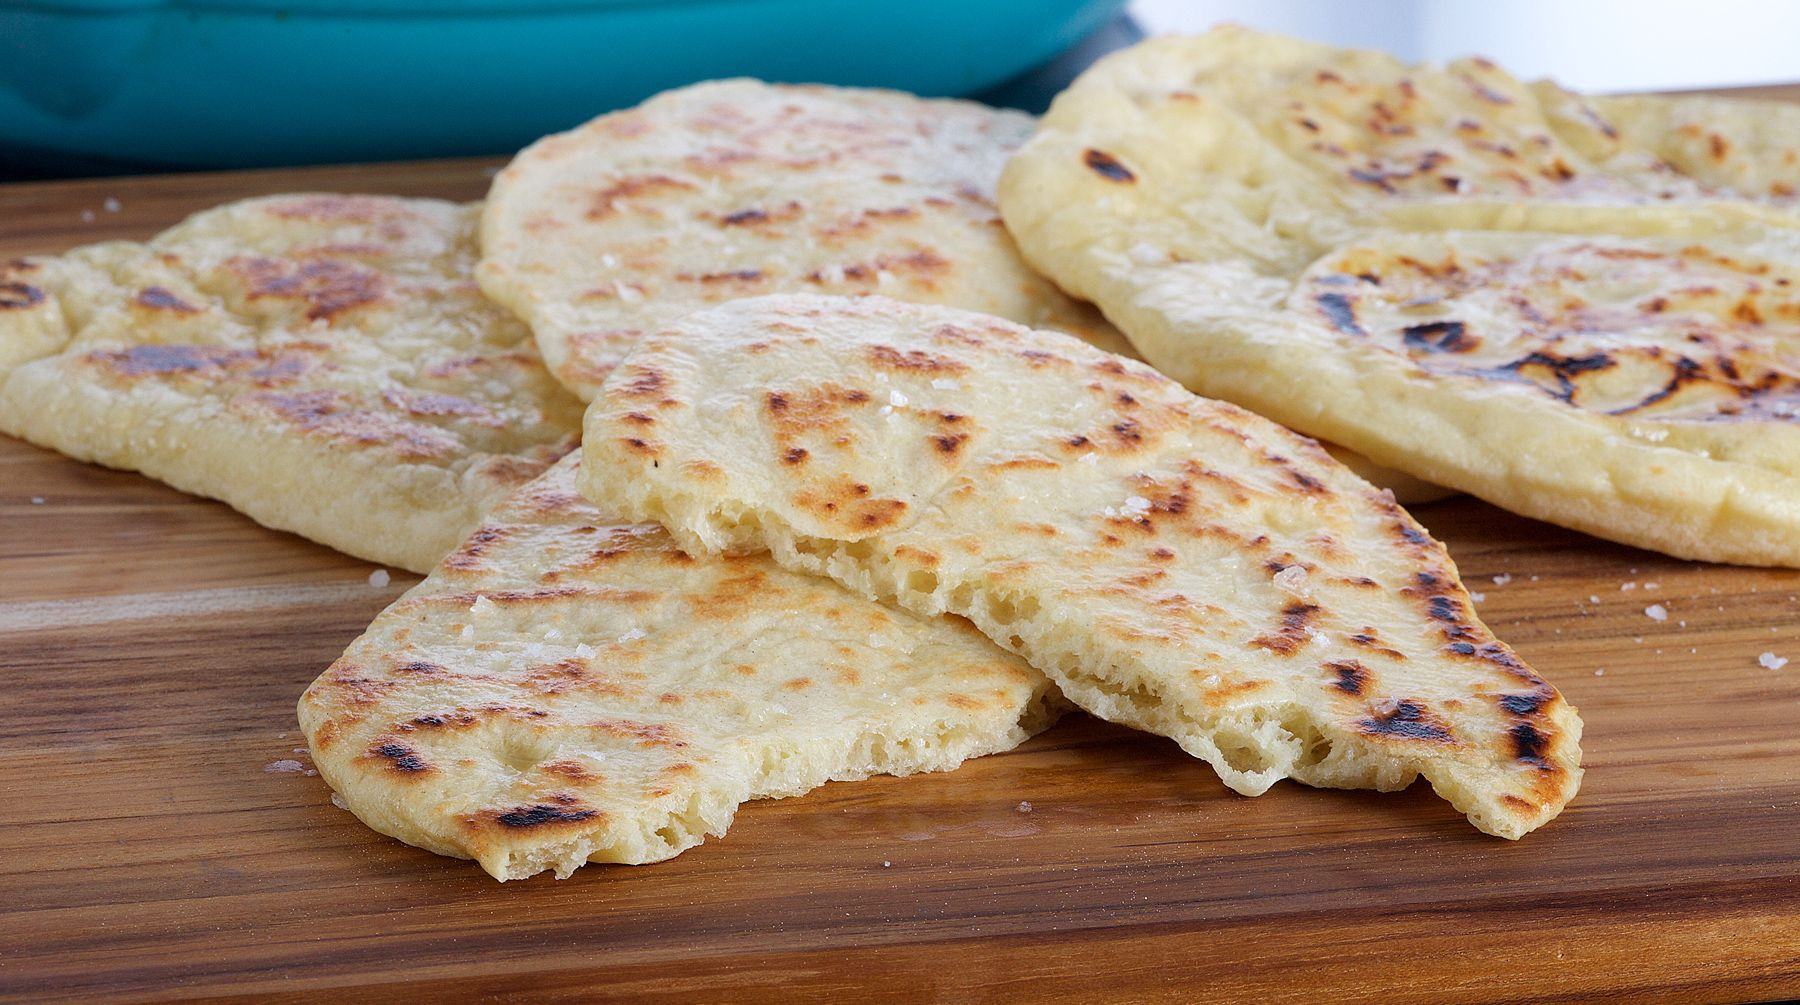 Indian Bread Recipe  Bake With Anna Olson Recipes Indian Naan Bread